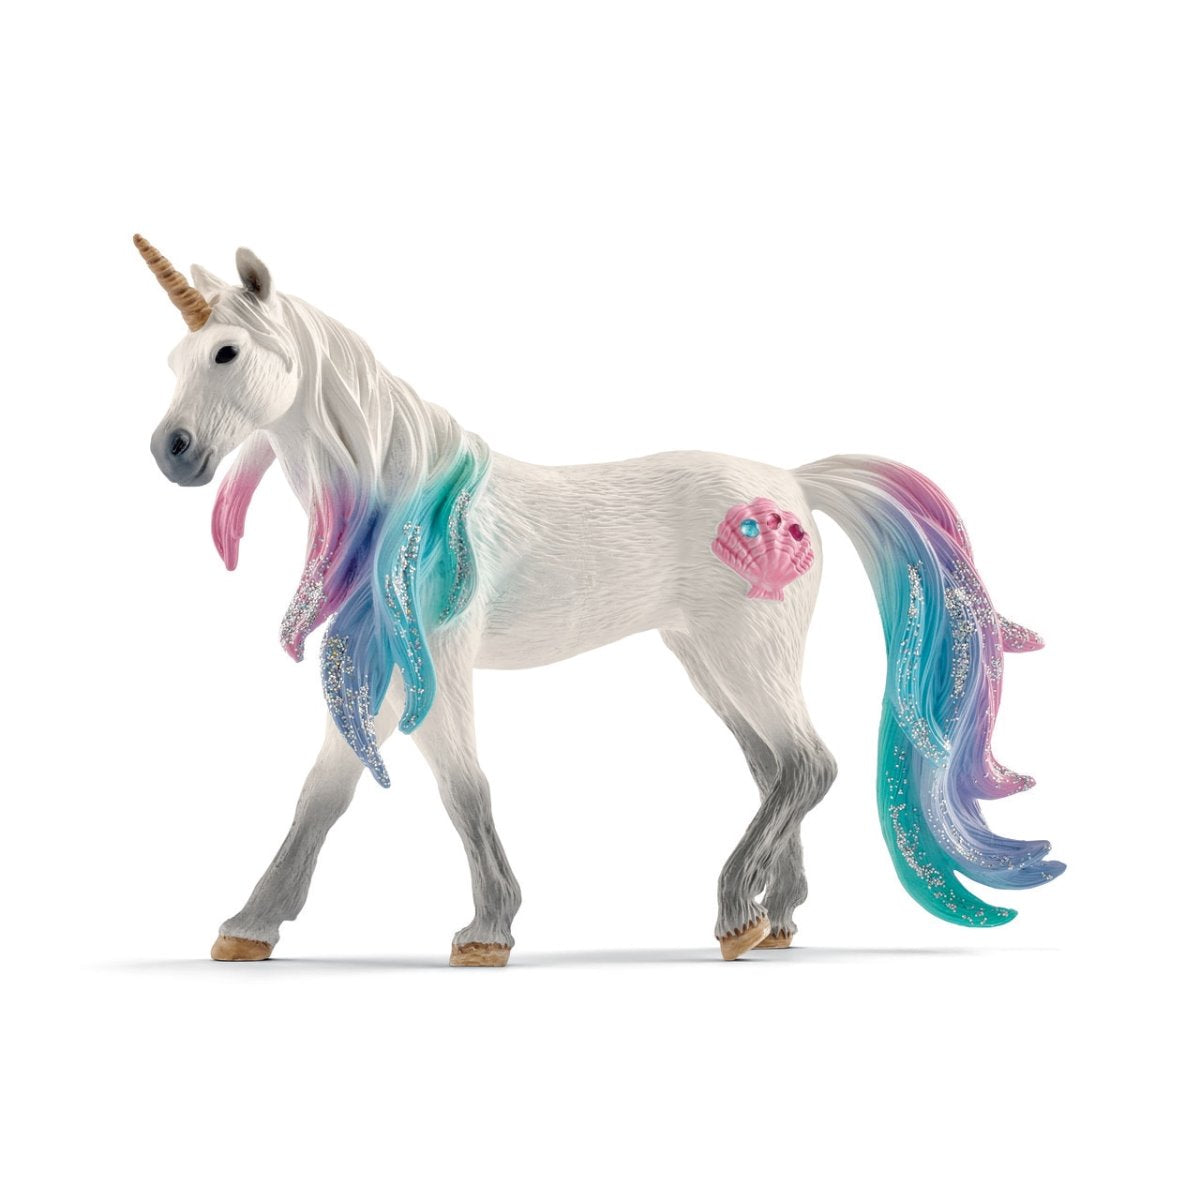 Schleich 70570 Sea Unicorn Mare